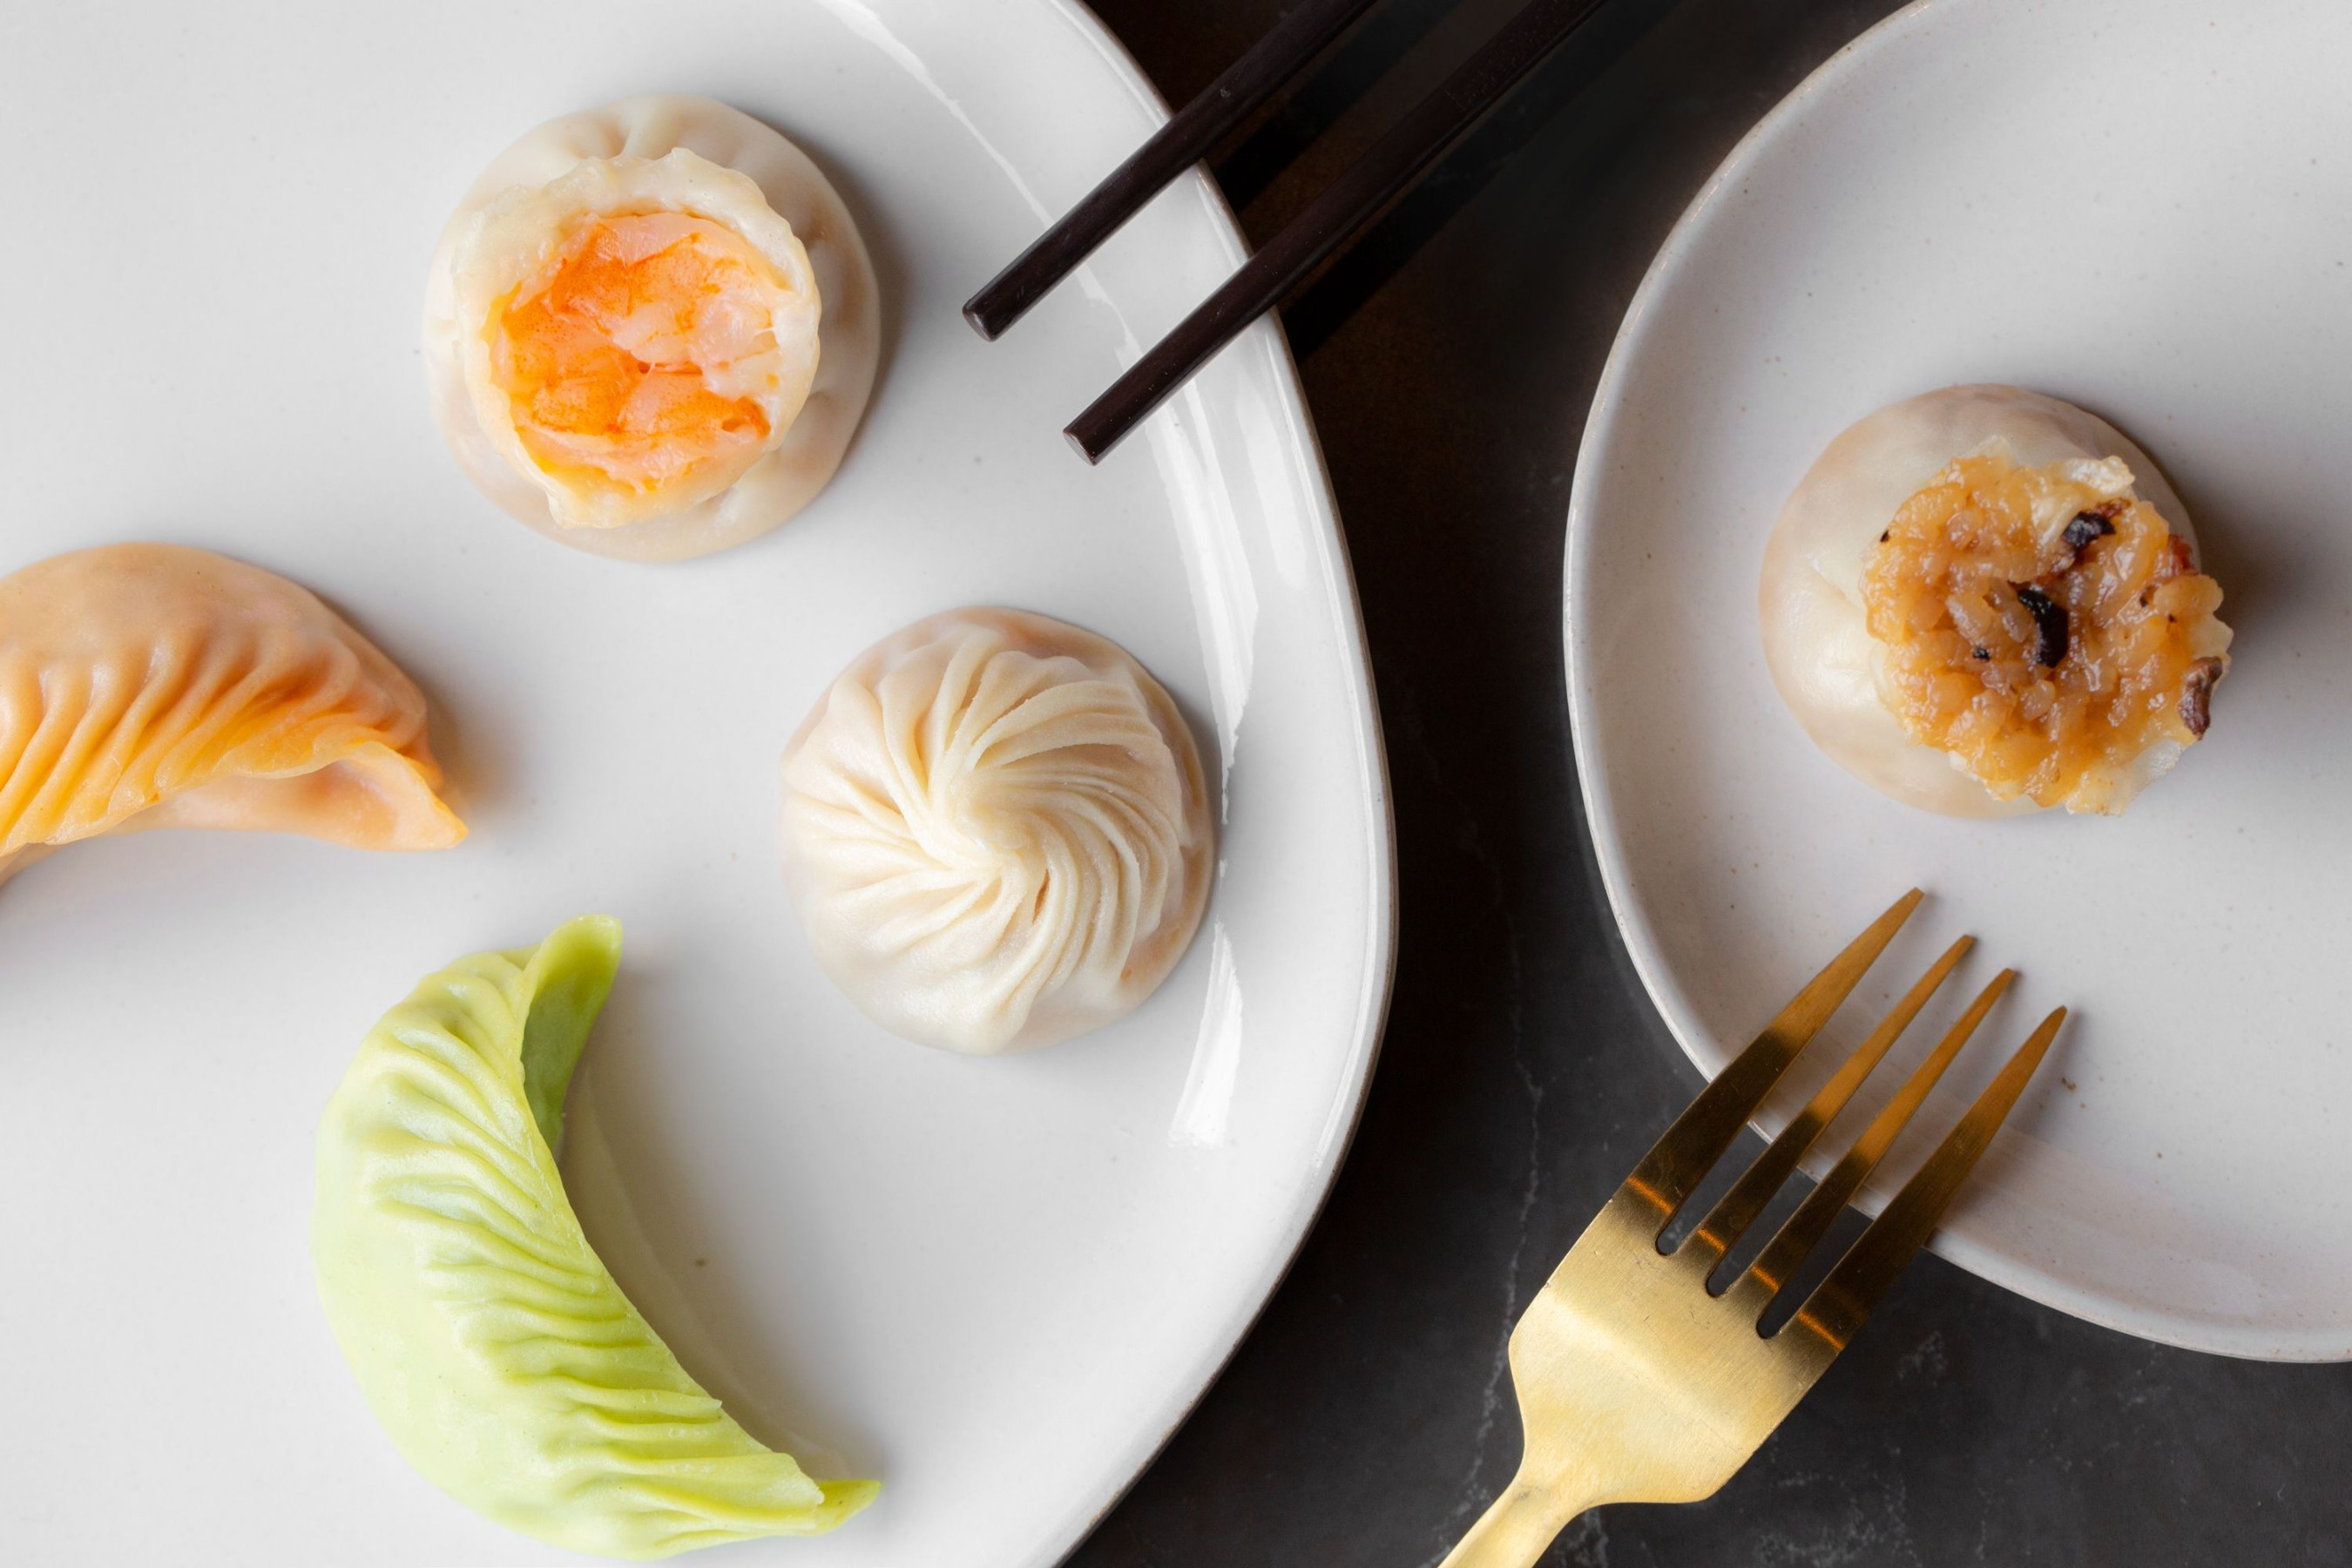 Din Tai Fung serves an assortment of handmade dumplings and dim sum including the meticulously crafted Kurobuta Pork Xiao Long Bao.